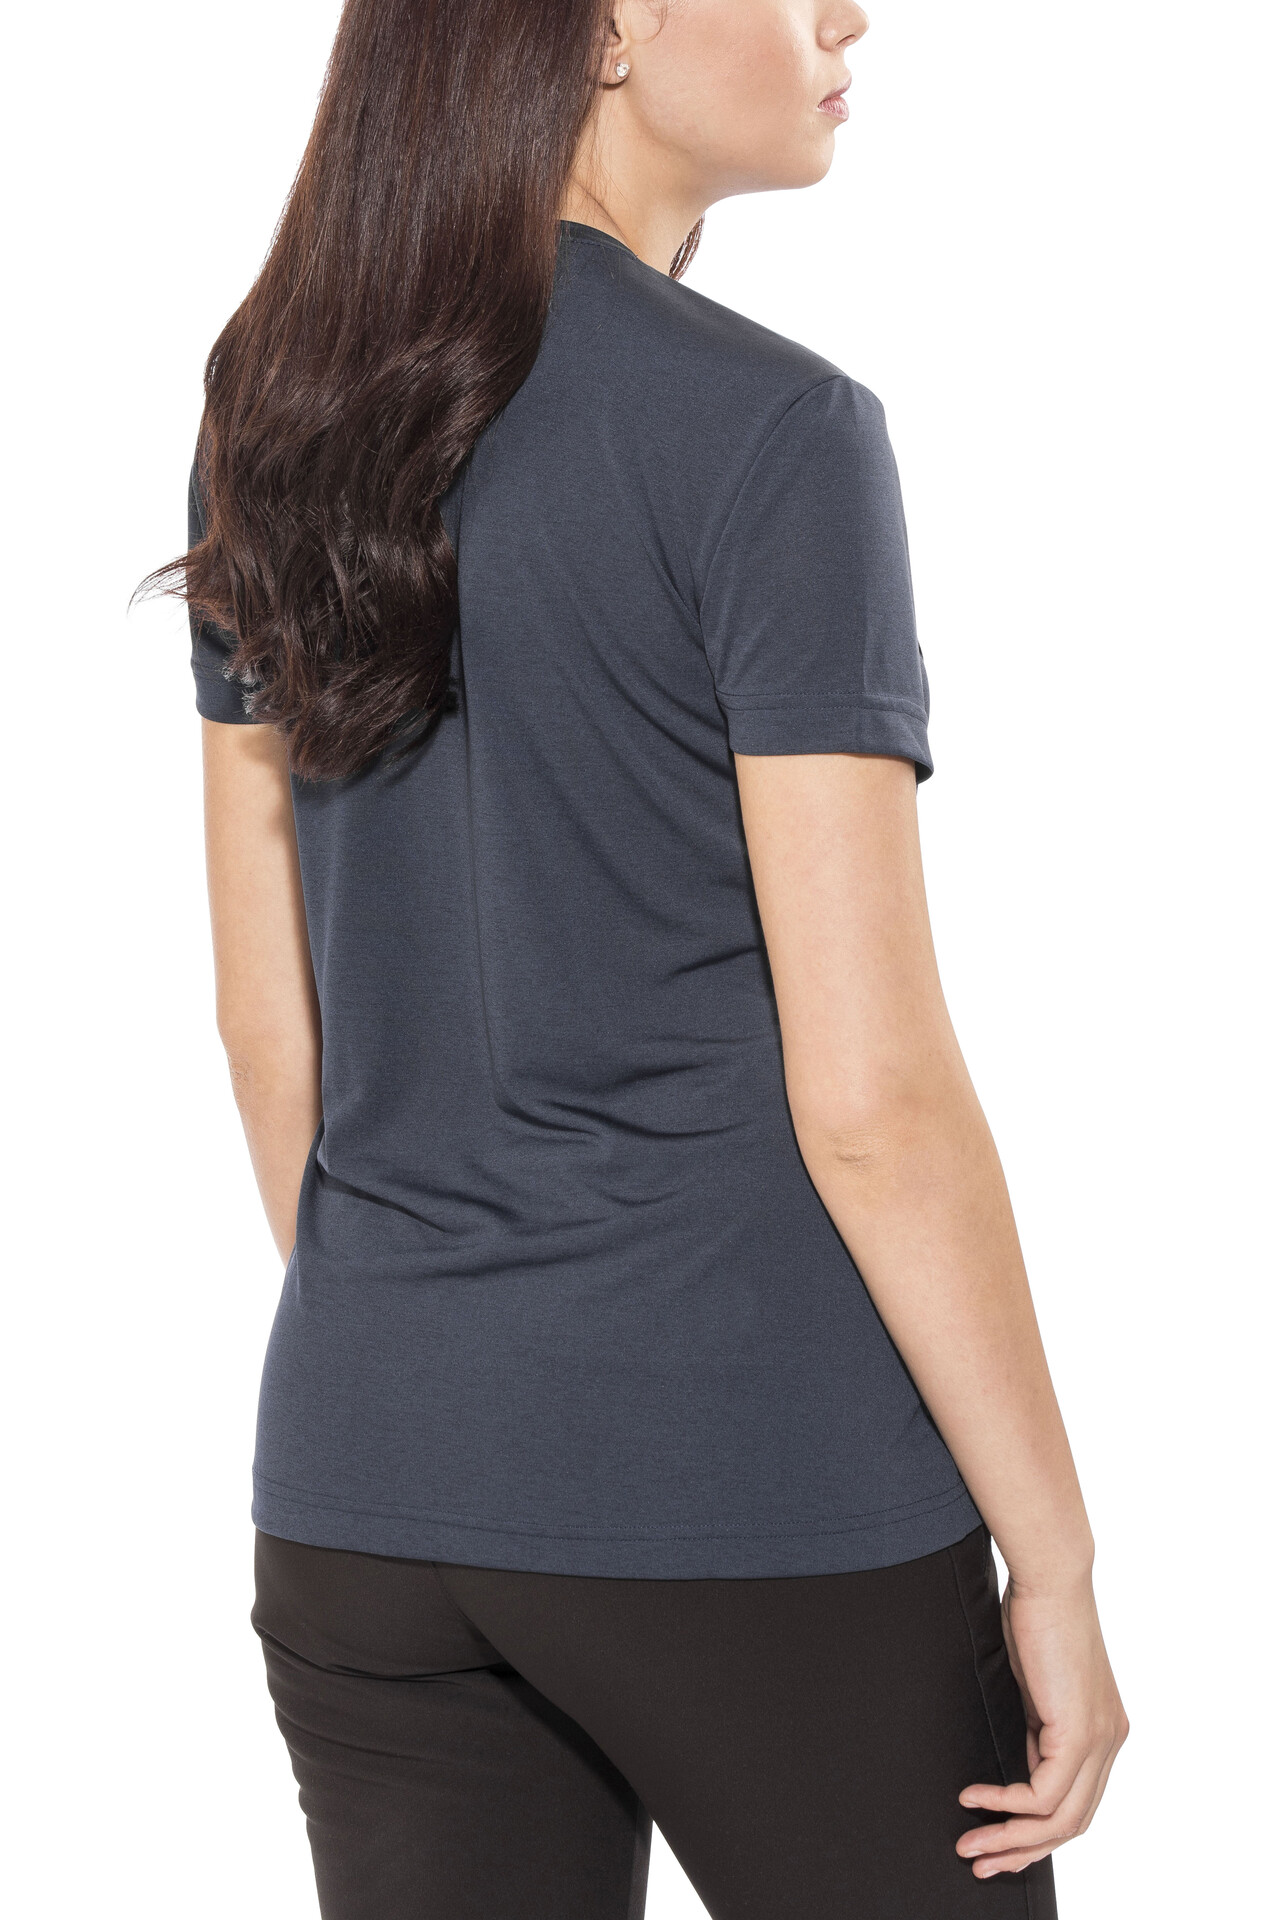 jack wolfskin regular outdoor shirt crosstrail dames